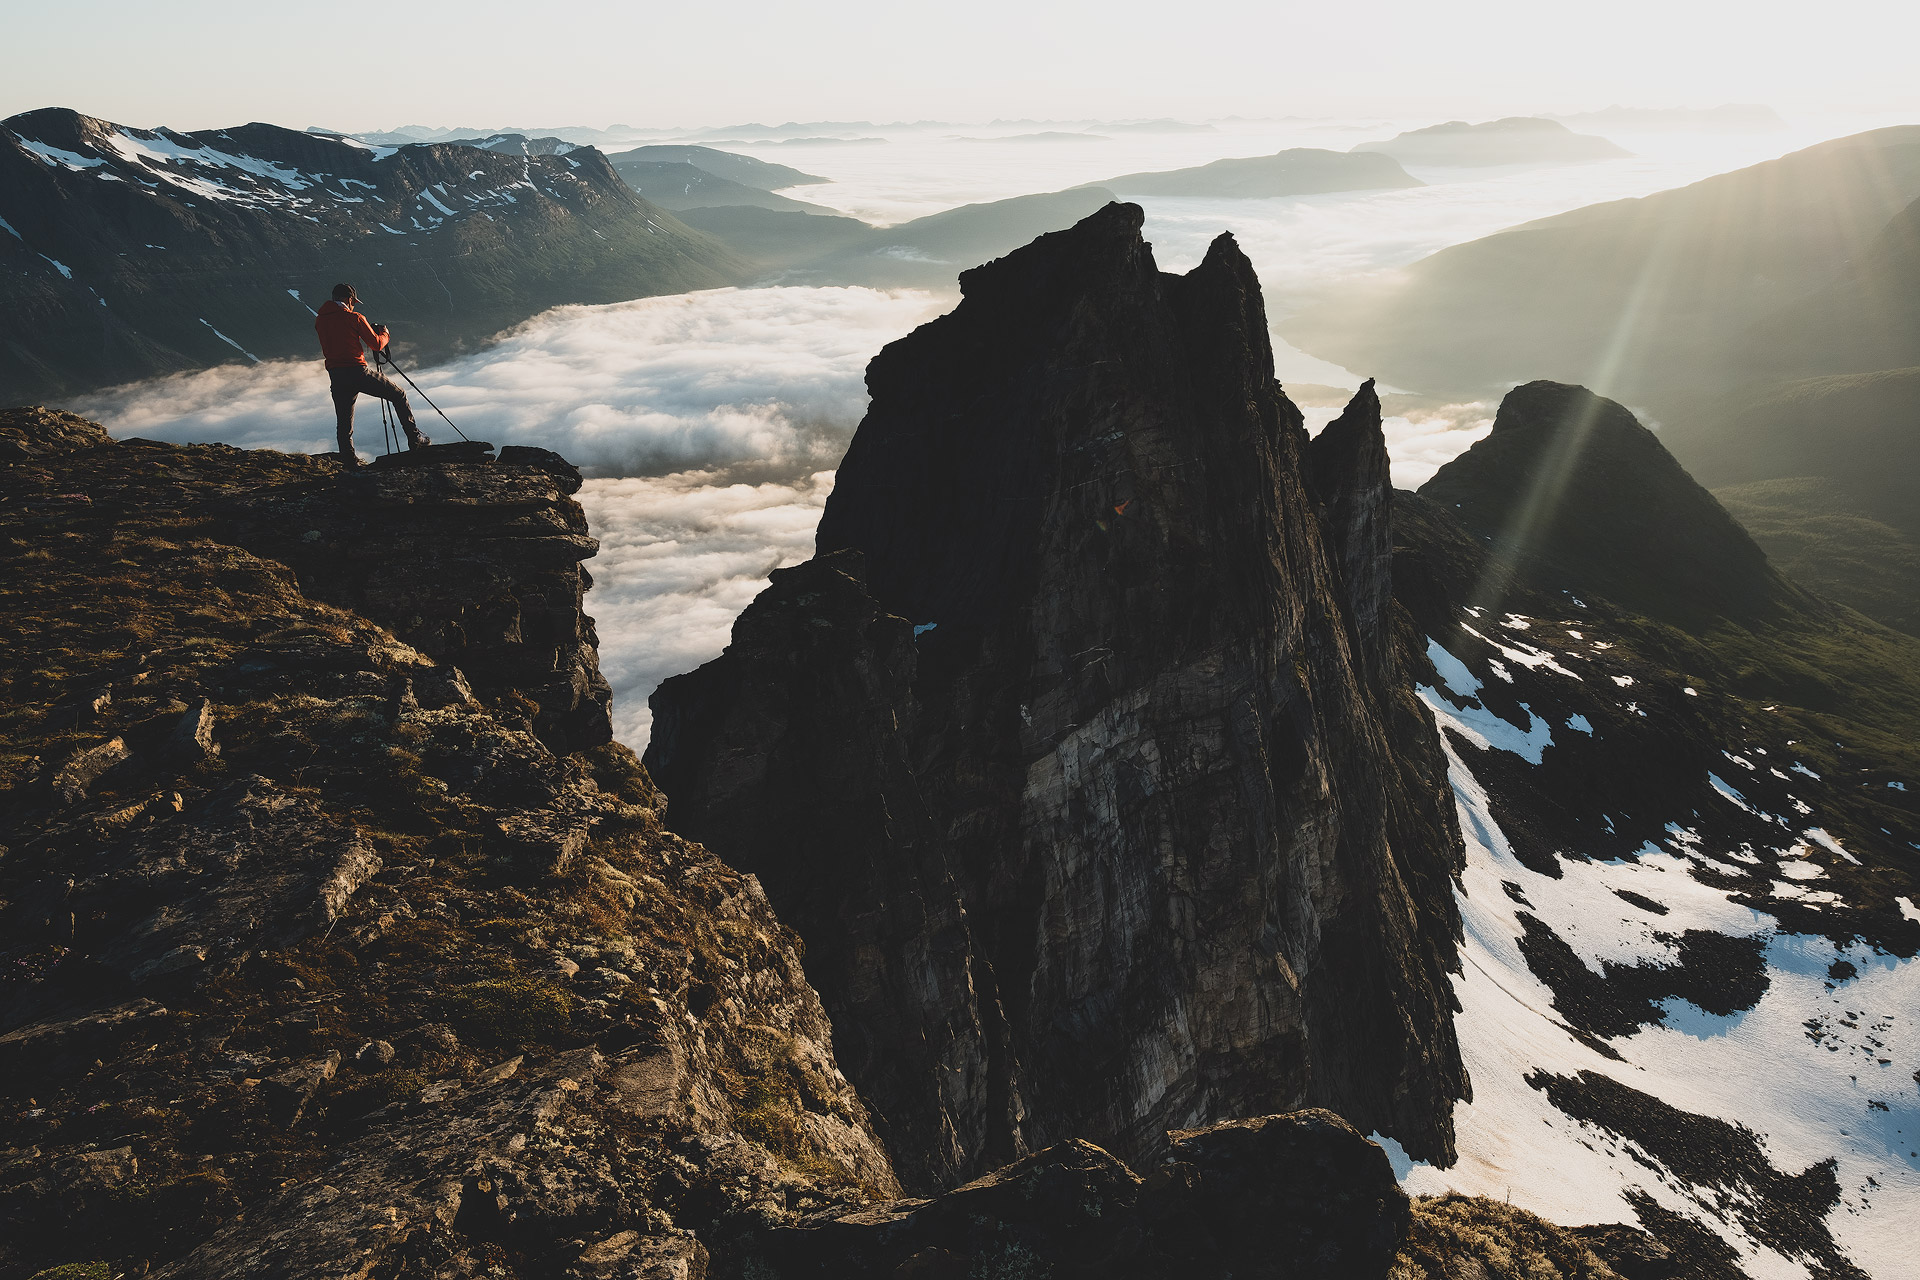 Photographer with a tripod taking a picture of an epic landscape